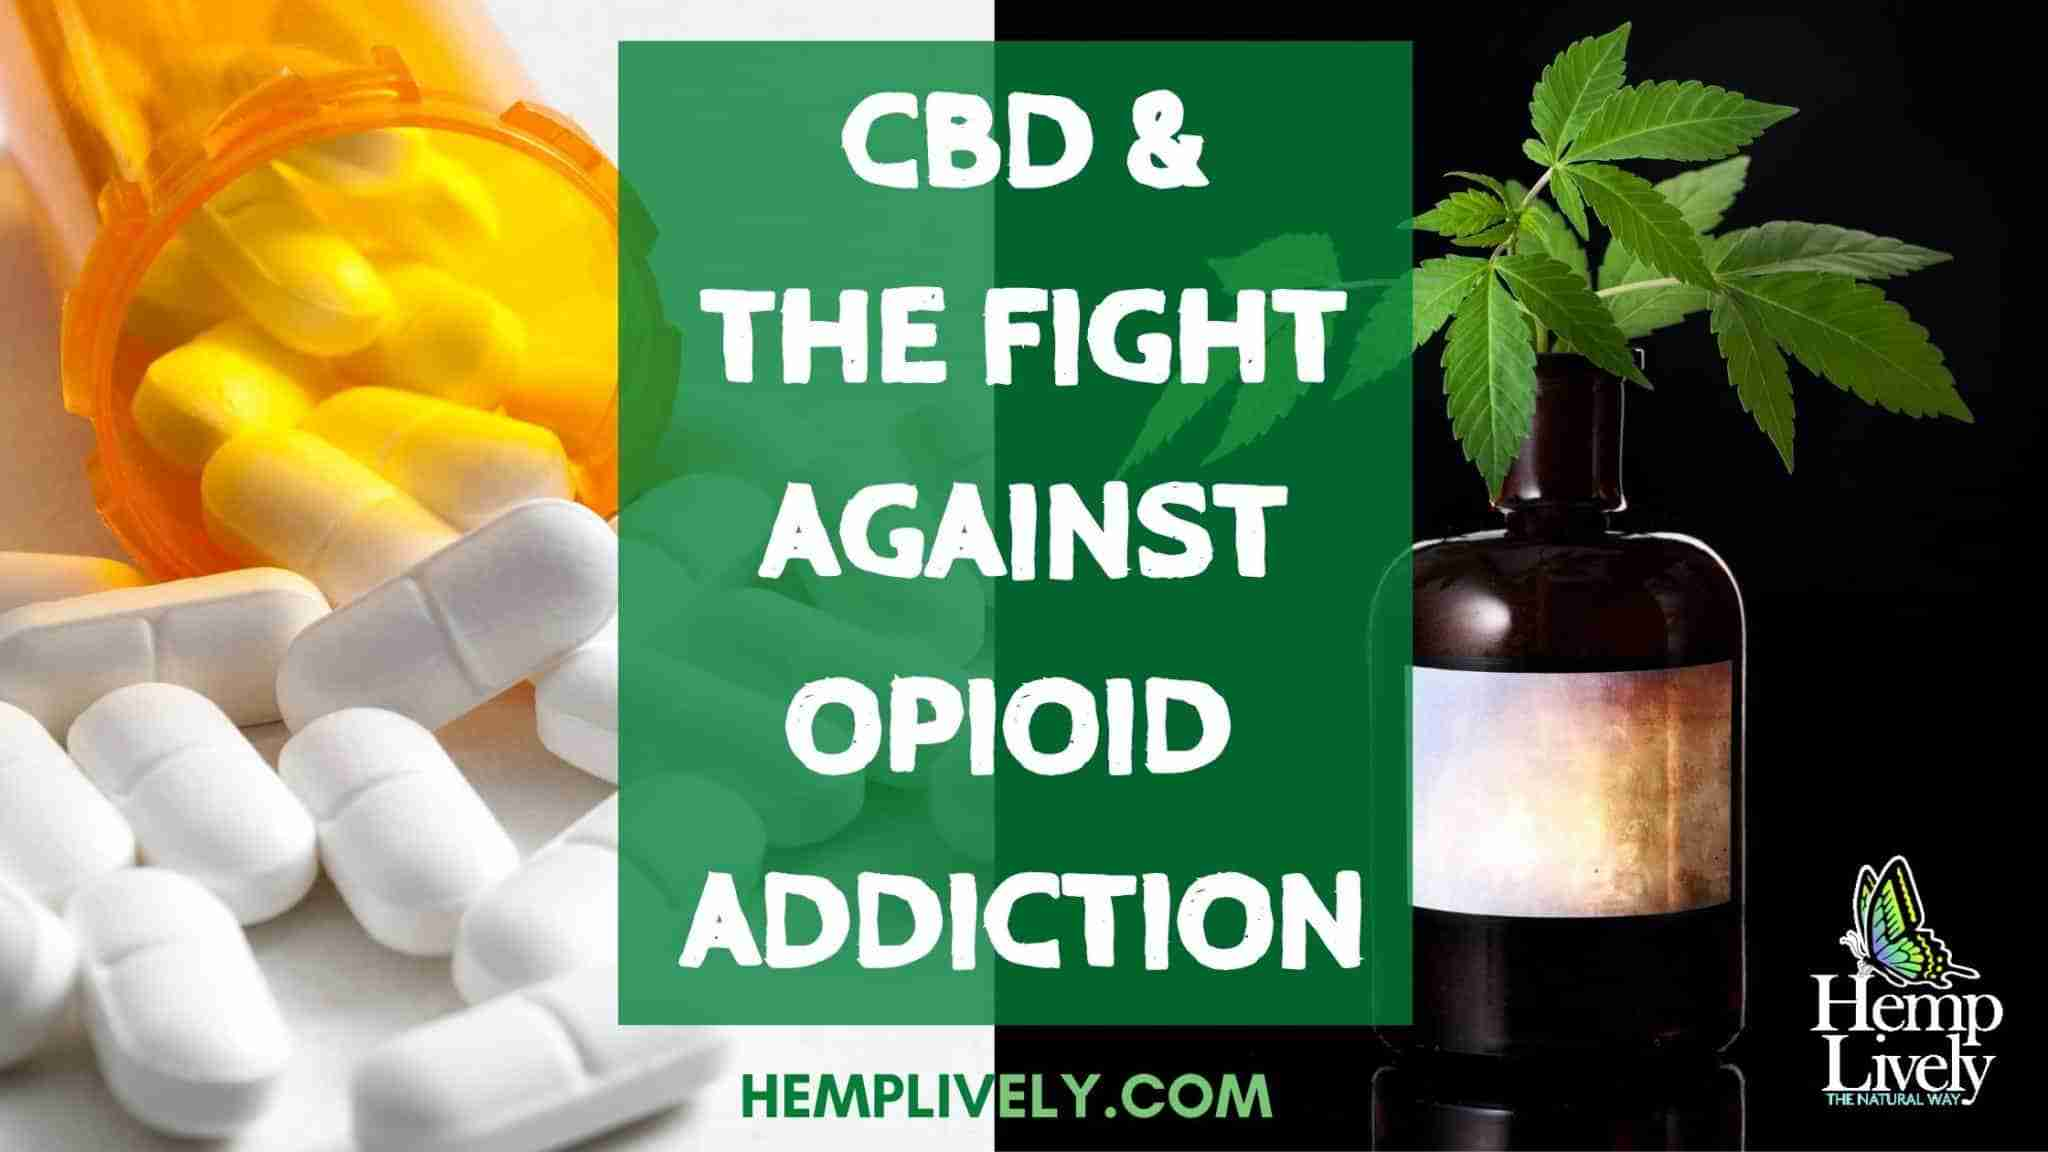 CBD: Aiding in the Fight Against Opioid Addiction